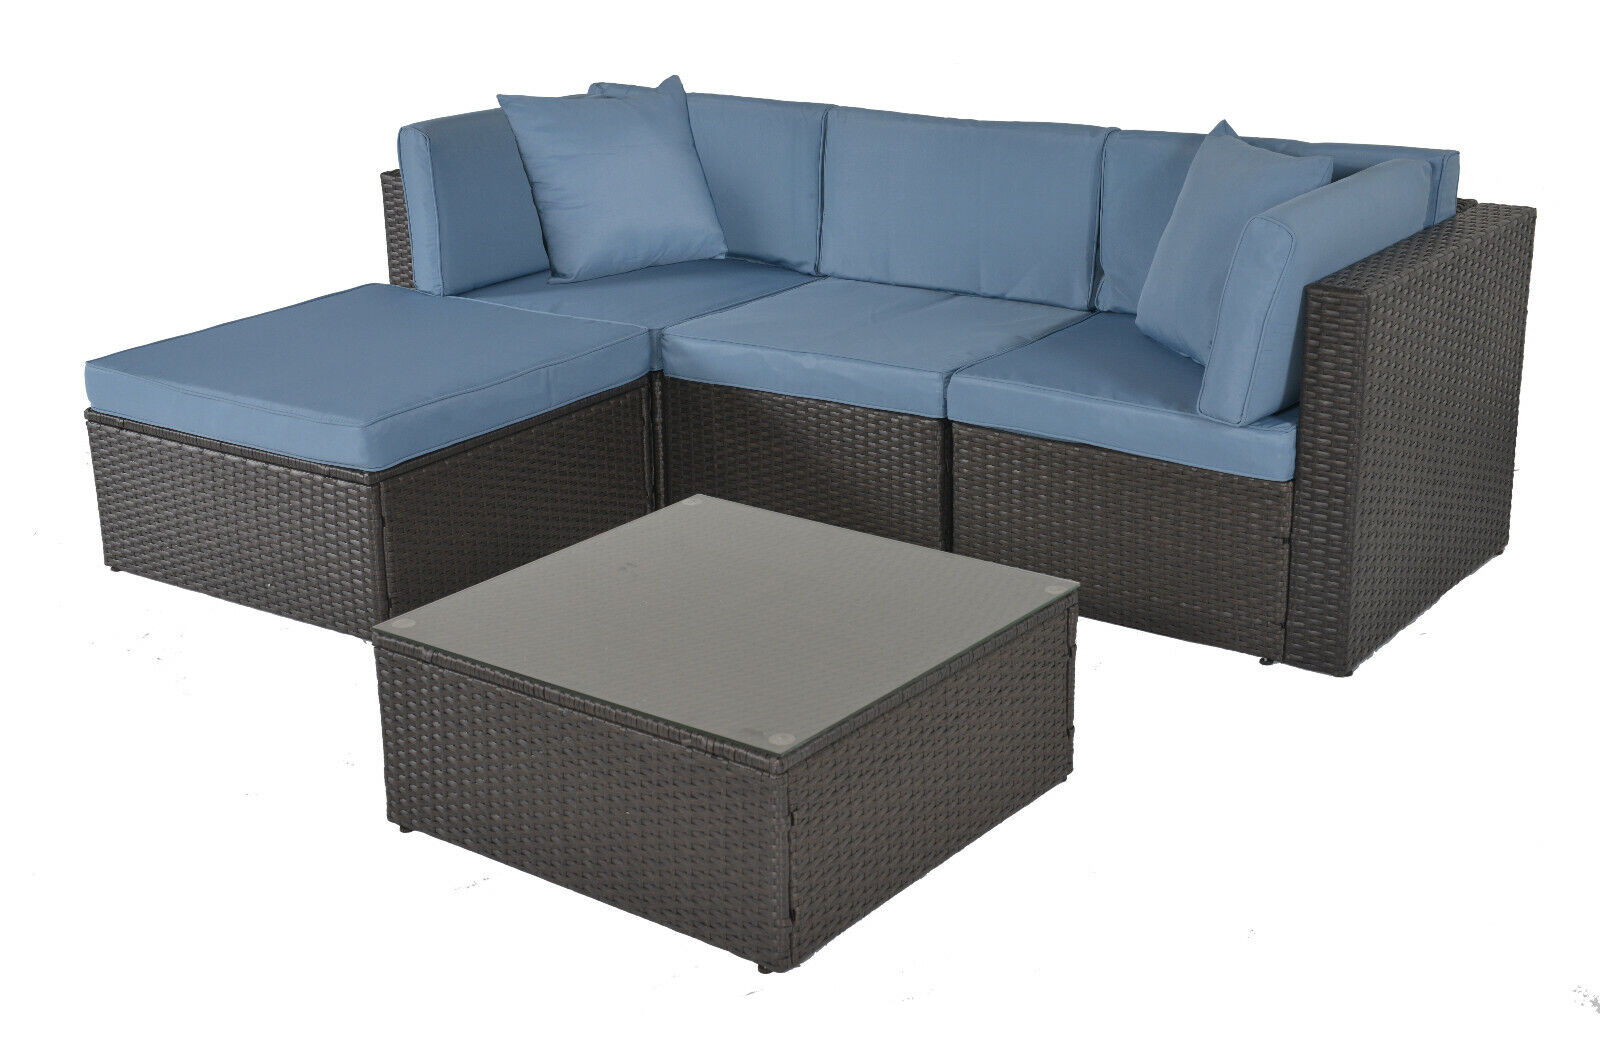 Garden Furniture - 5 pcs Outdoor Patio Furniture Wicker Sofa Set Rattan Sofa Garden Sectional Set